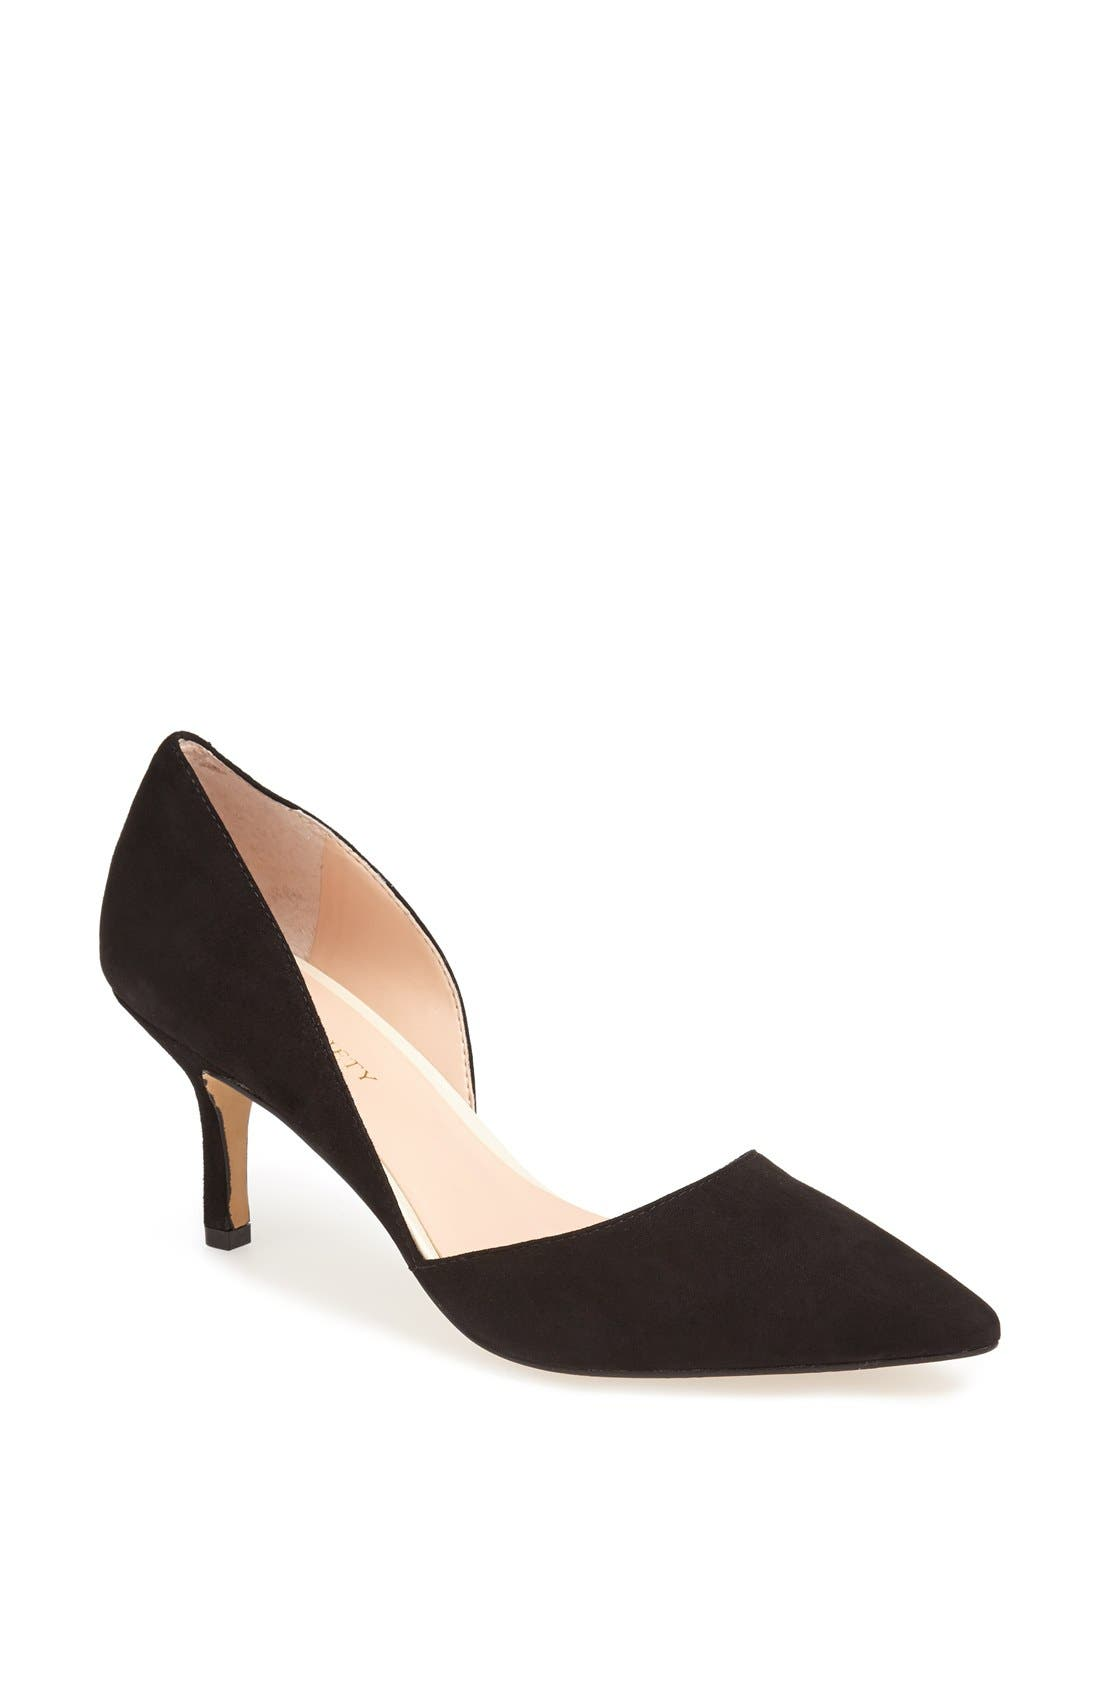 'Jenn' Pointy Toe Pump,                             Main thumbnail 1, color,                             001